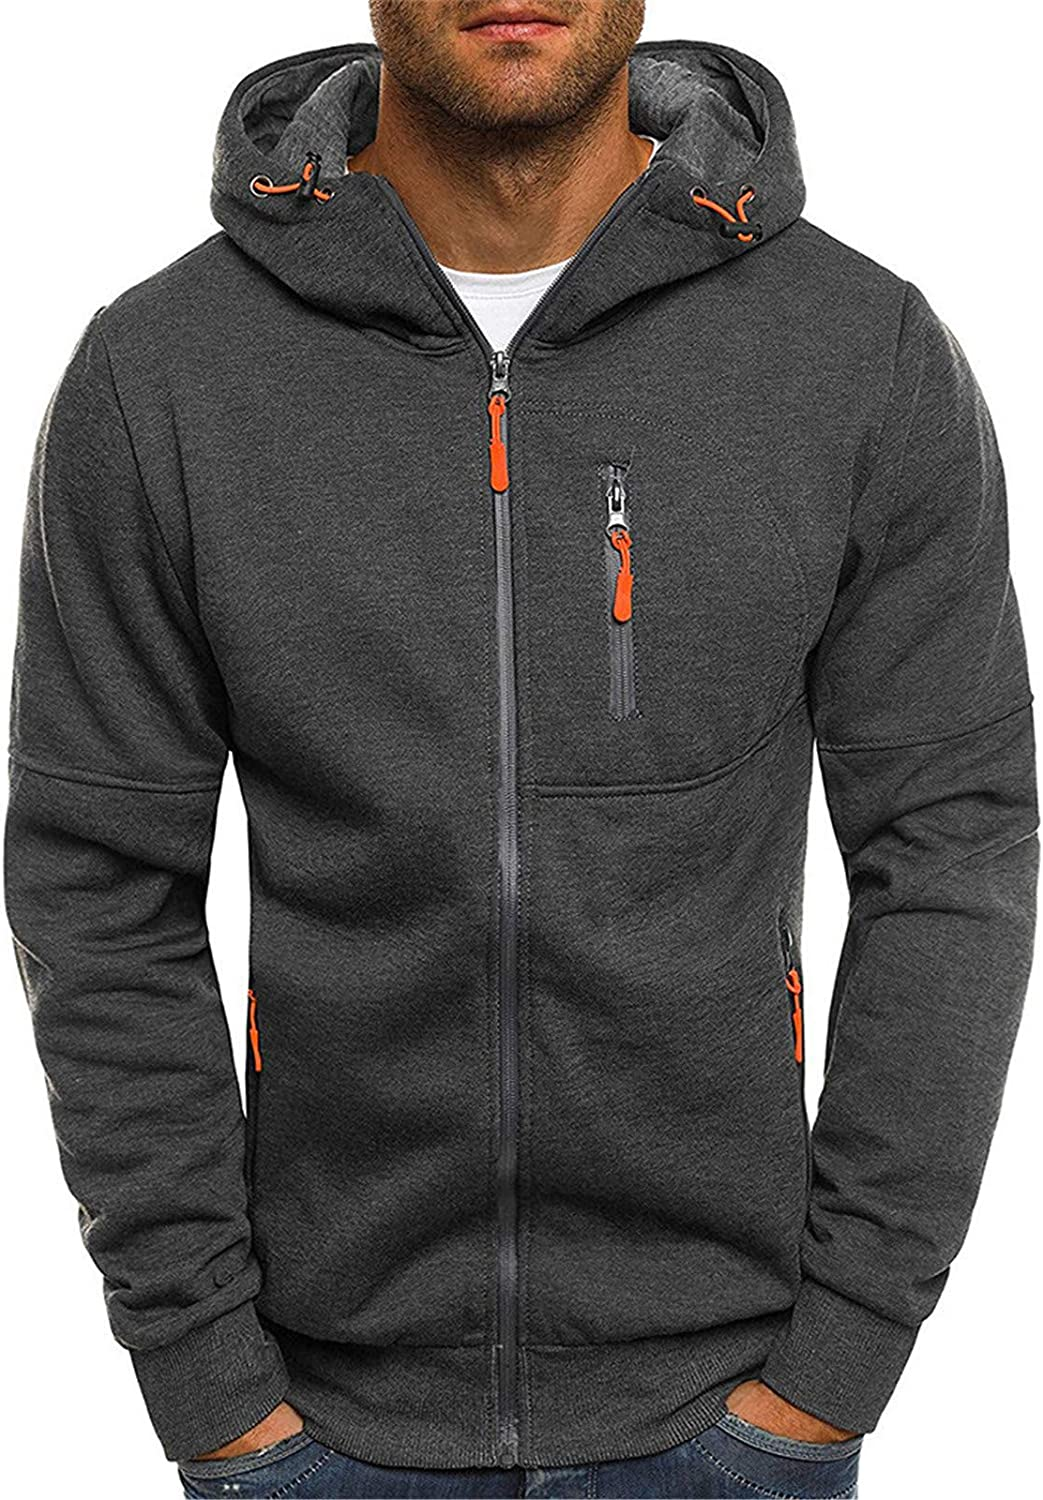 Indefinitely Men's Jacket Sports Al sold out. Coat Outdoor Climbing Sw Top Collar Stand-Up